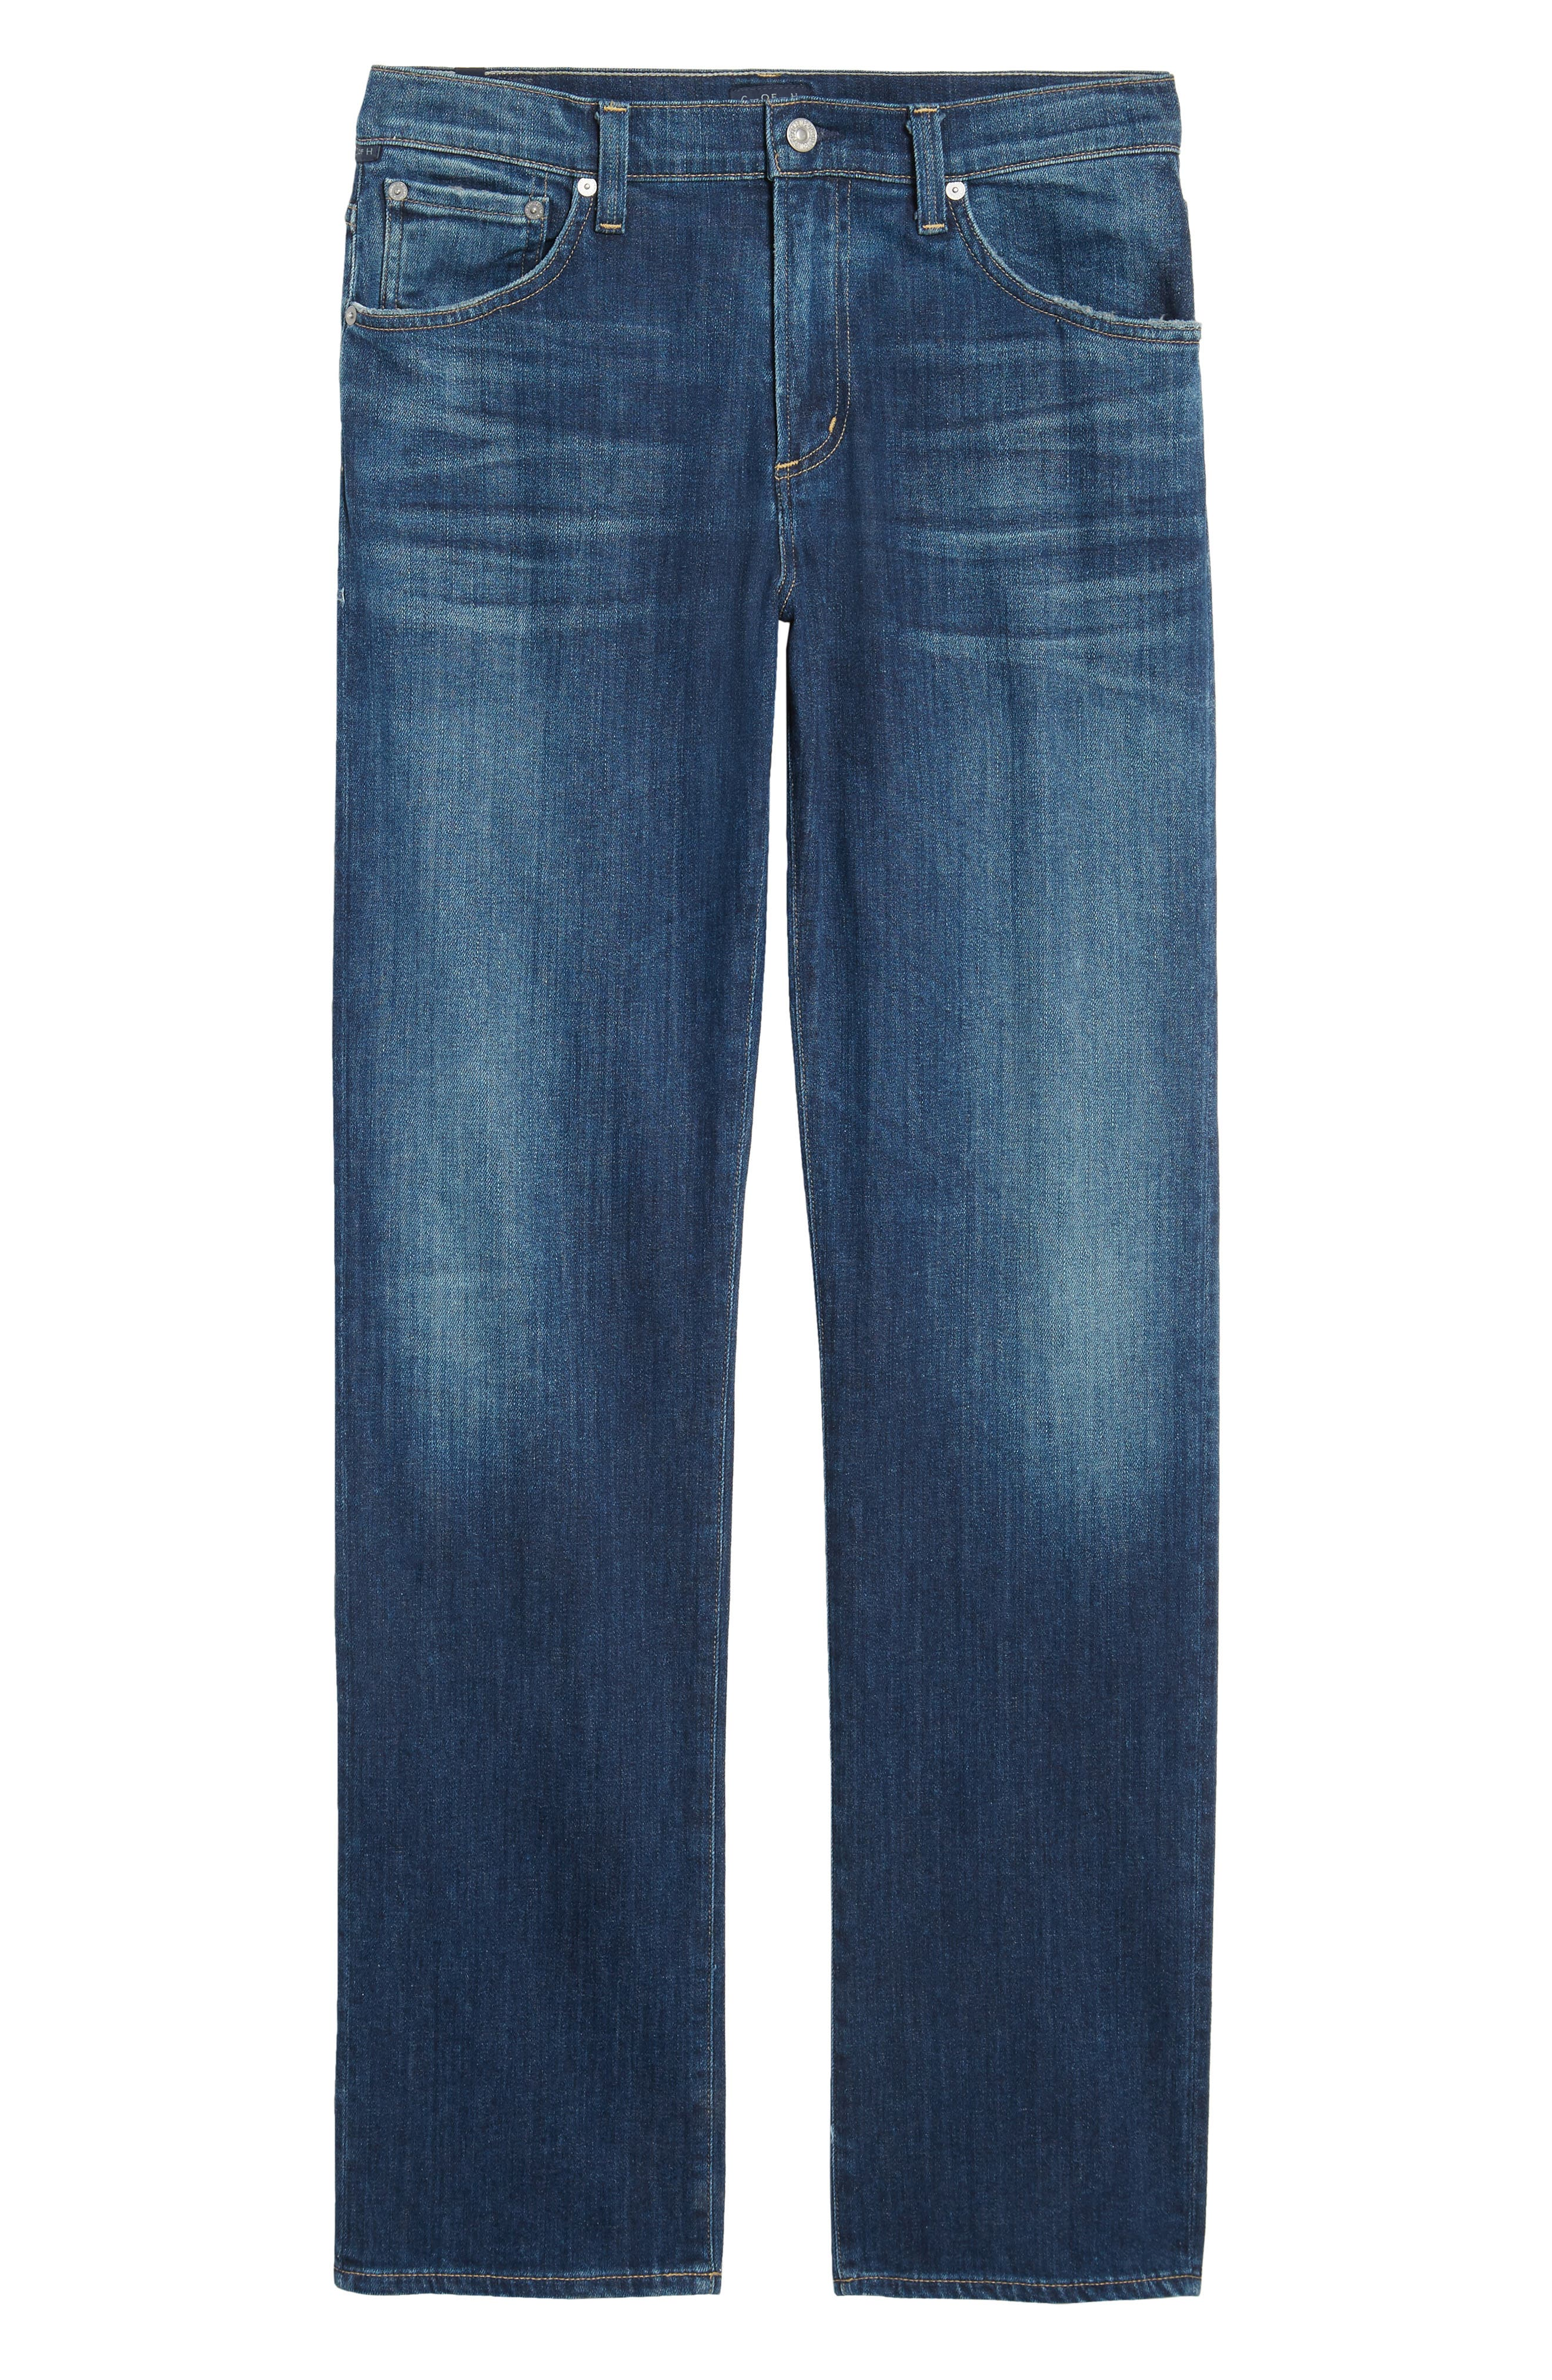 Sid Straight Fit Jeans,                             Alternate thumbnail 6, color,                             410